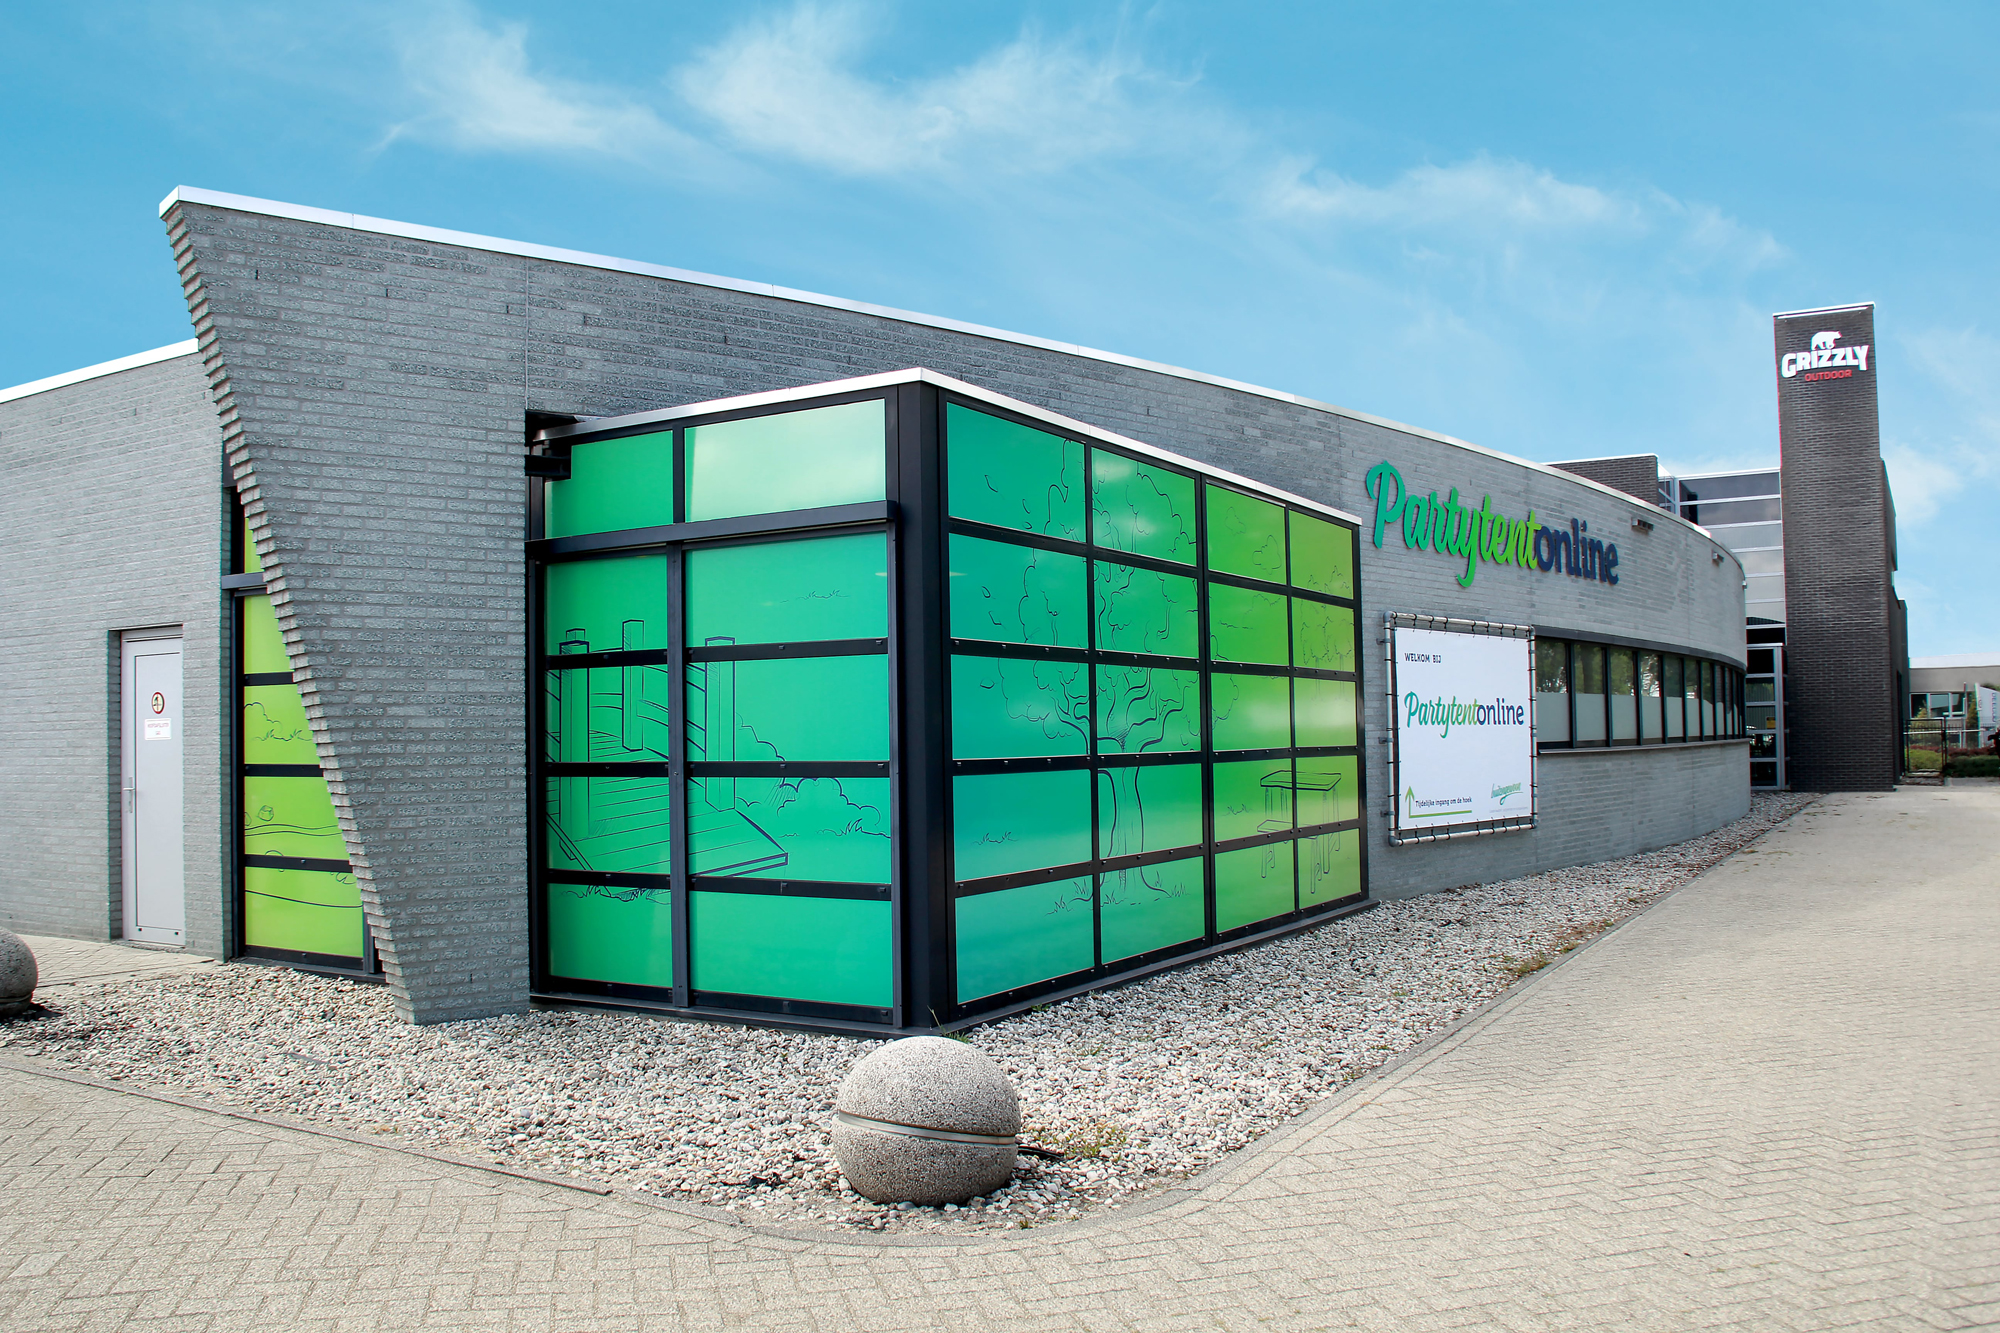 Pand Partytent-Online Veghel